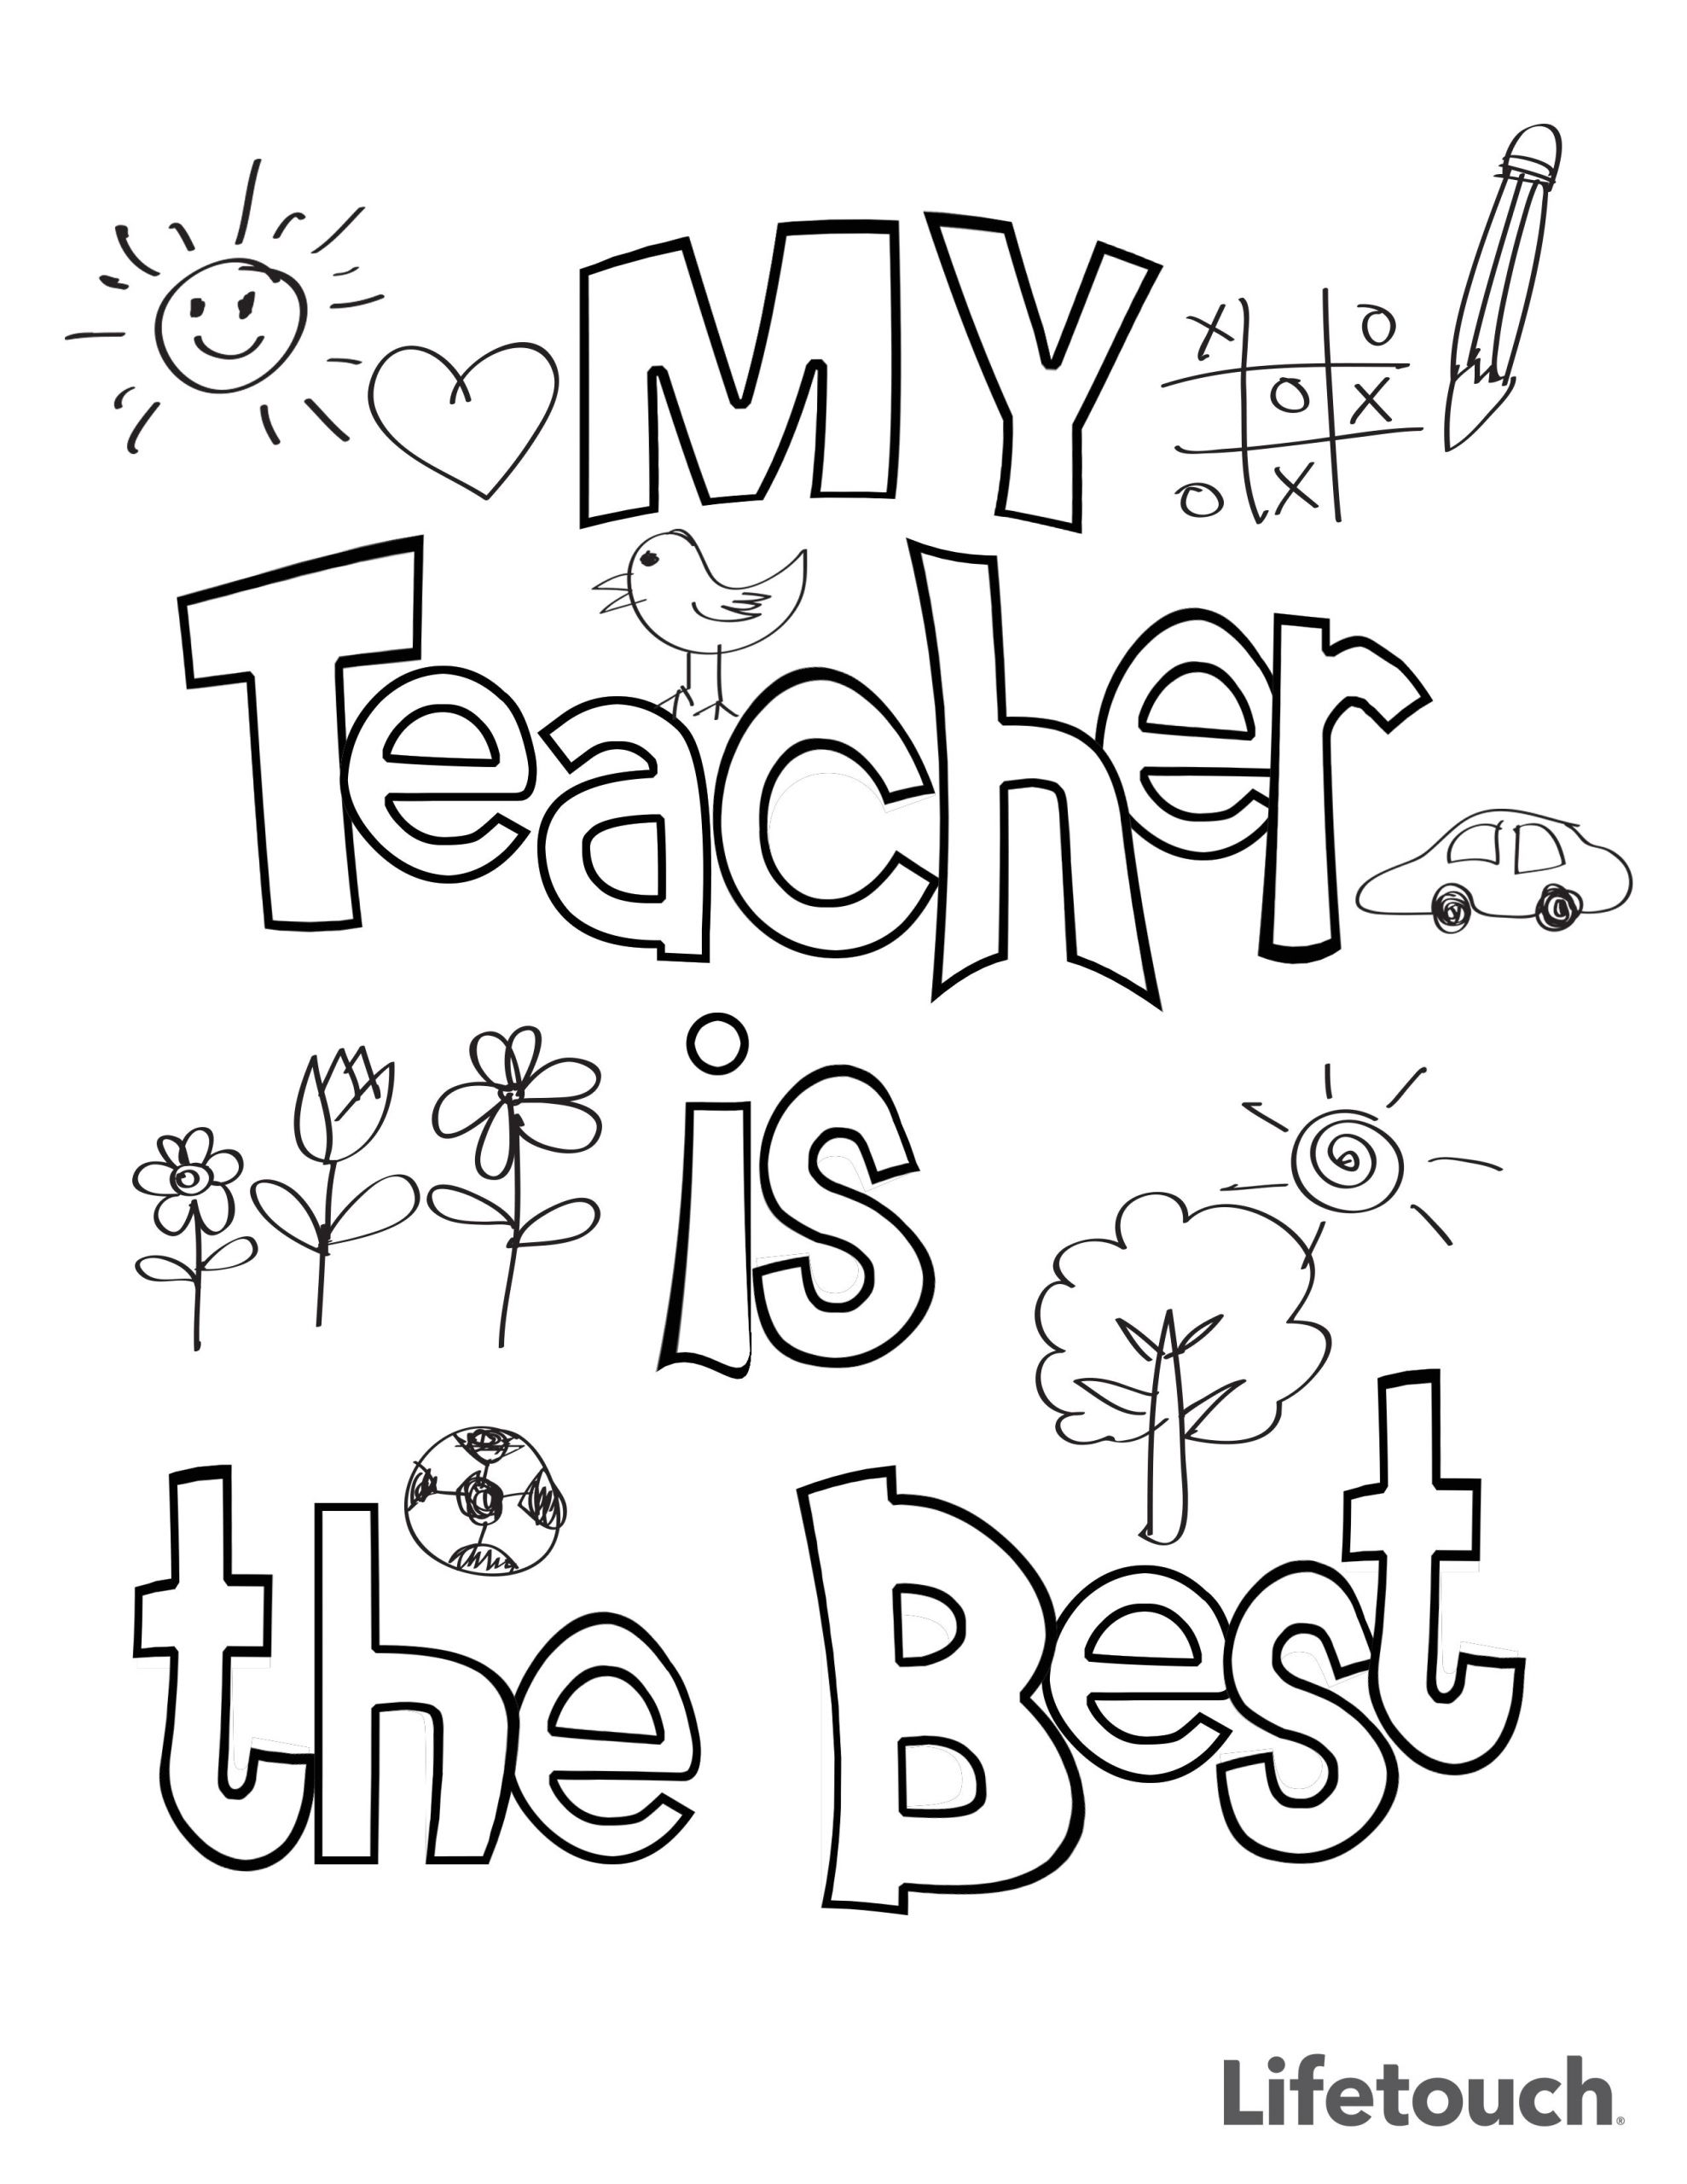 Happy Teachers Day Card Printable Teacher Appreciation Coloring Sheet with Images Teacher